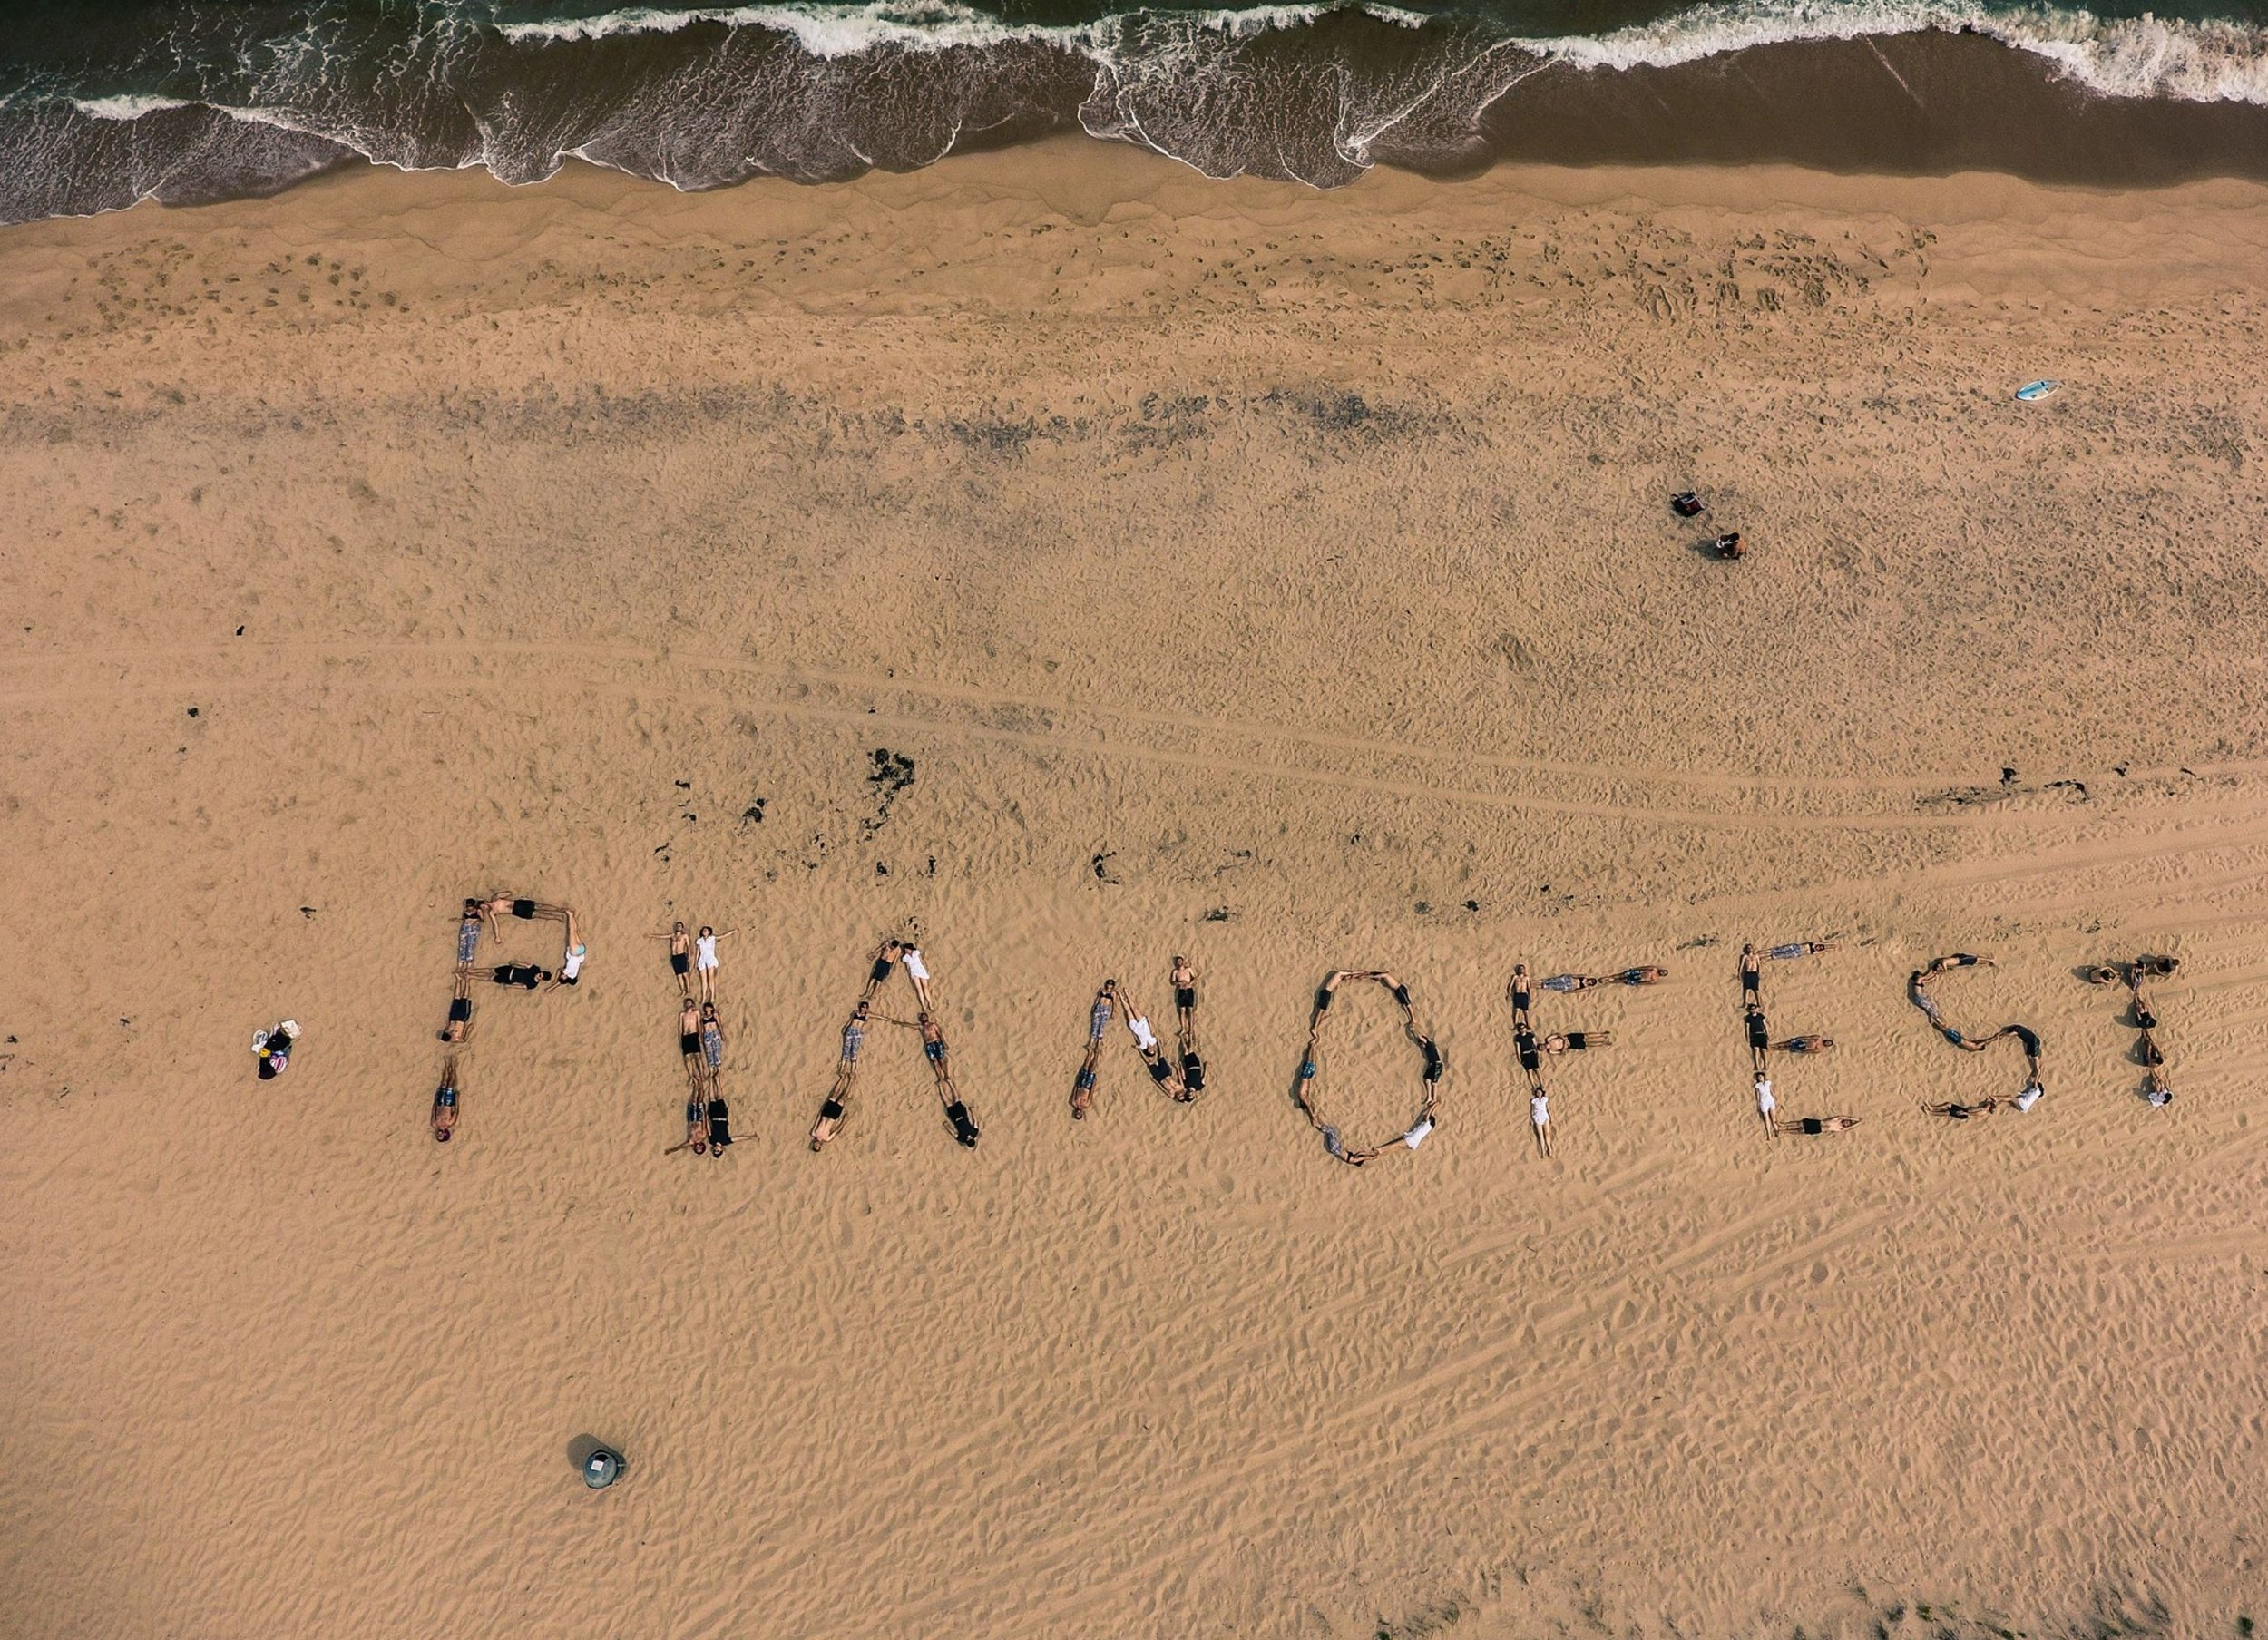 Photo by Jacopo Giacopuzzi, using the Pianofest drone camera